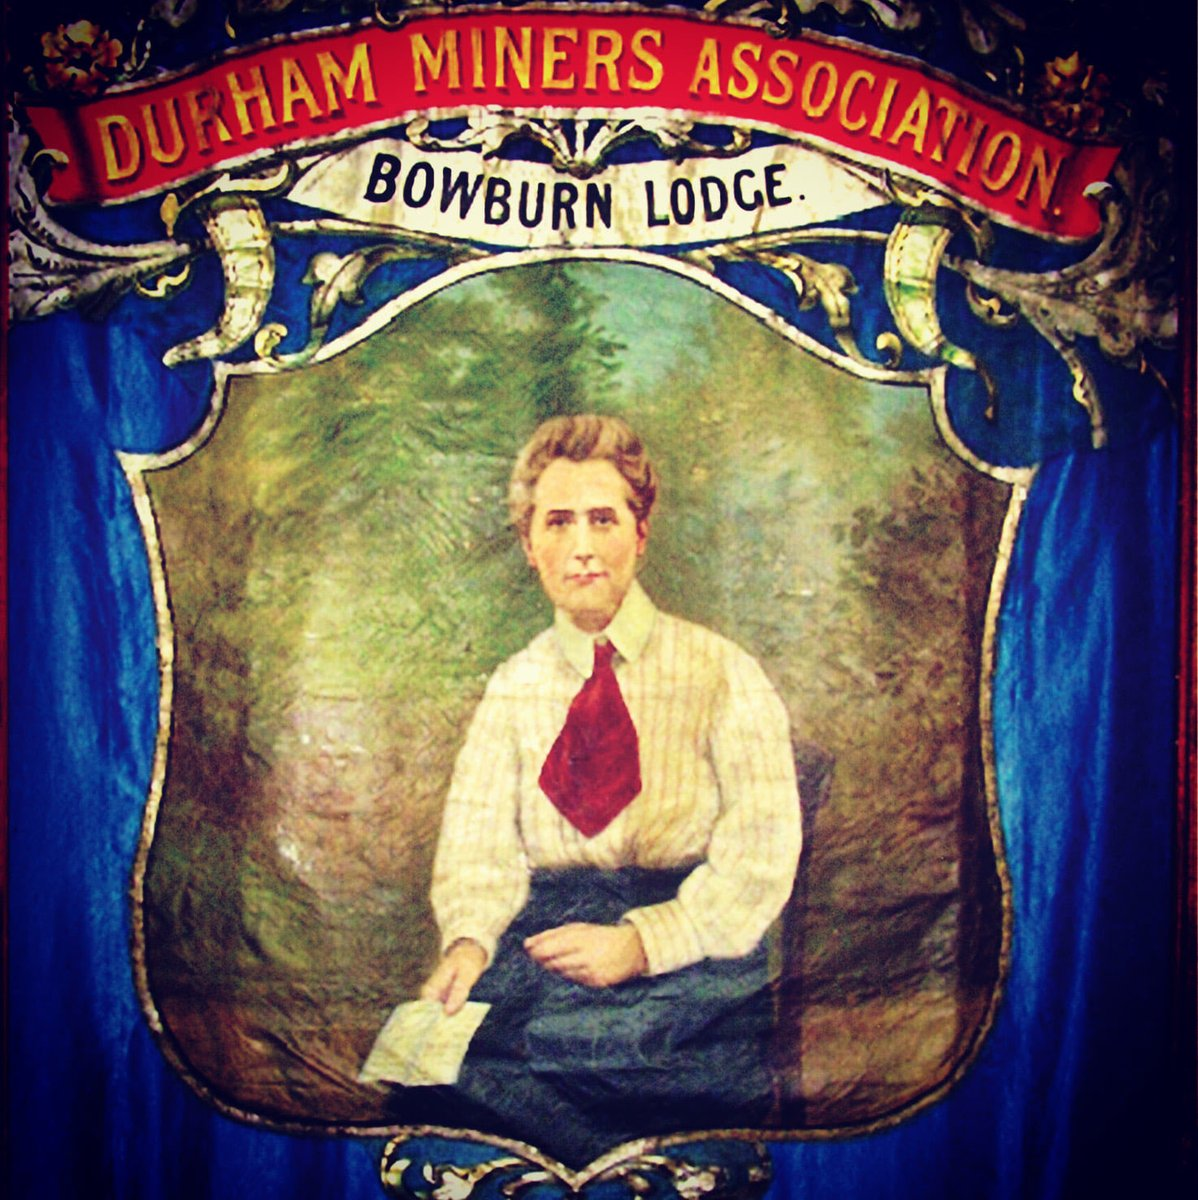 """""""Patriotism is not enough. It is not enough to love one's own people, one must love all humanity"""" –  Edith Cavell, born #OnThisDay in 1865.  A nurse during WW1, she saved the lives of soldiers on both sides. She is memorialised on the @DurhamMiners Bowburn banner (1/2)"""